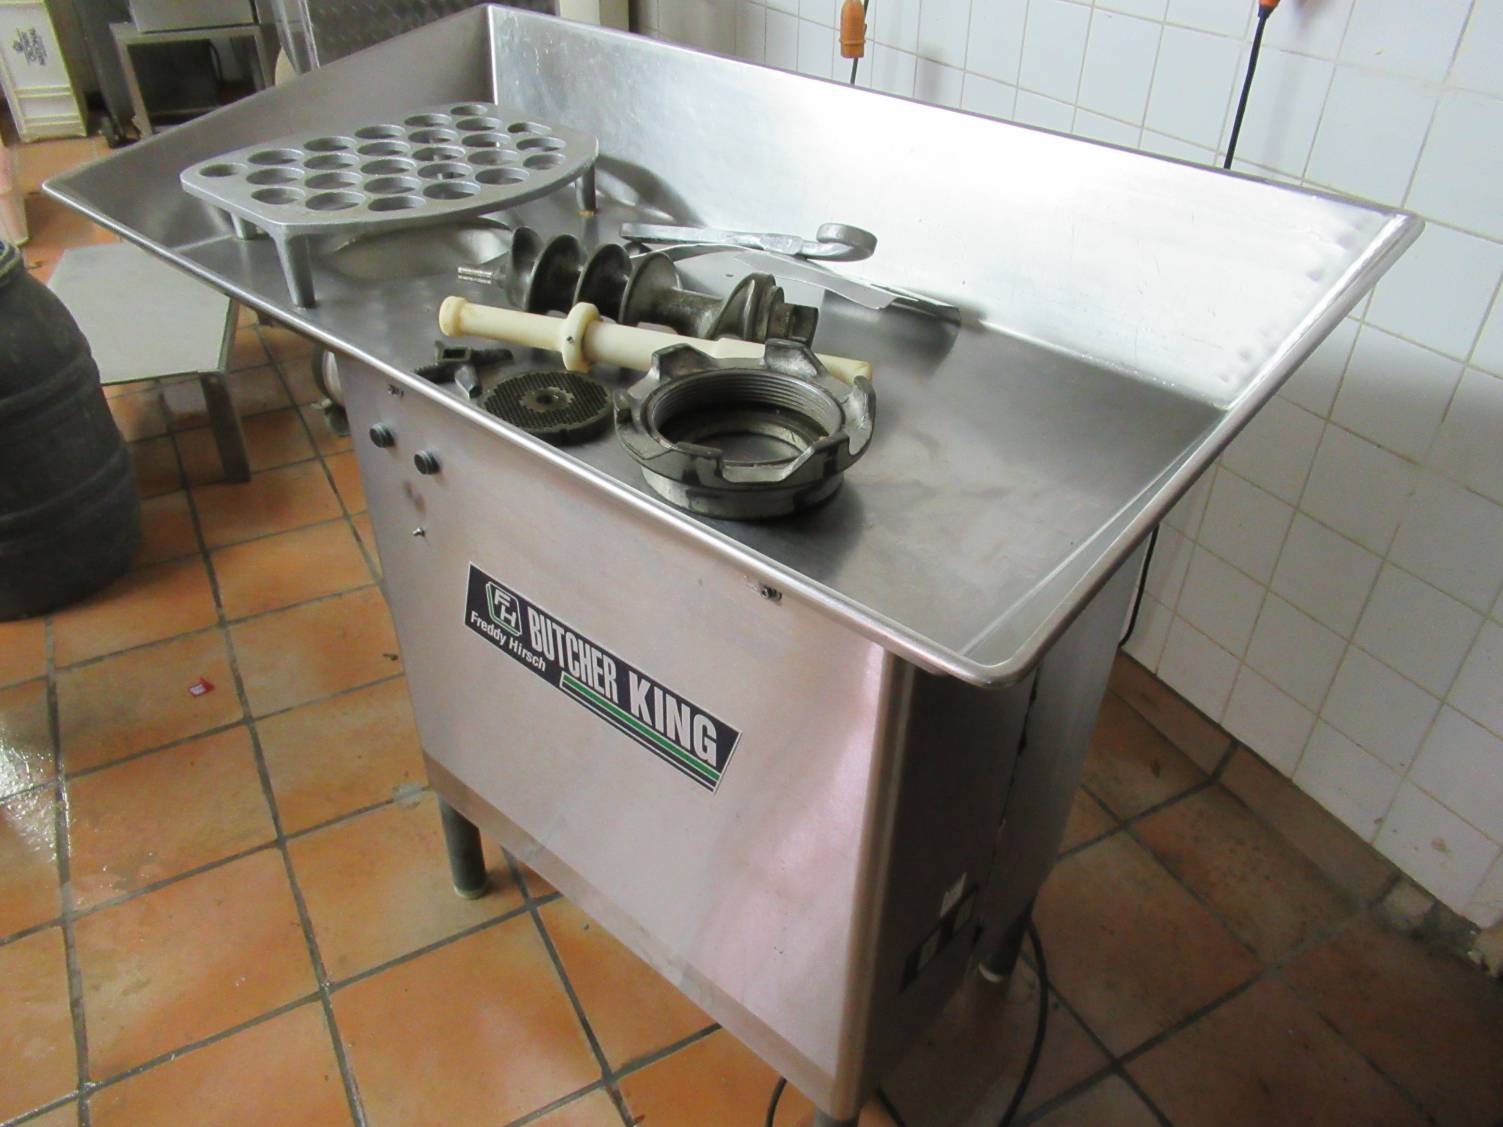 Freddy Hirsch / Butcher King 5.5 kW, 52 - Onsite auction of a butchery and meat processing equipment